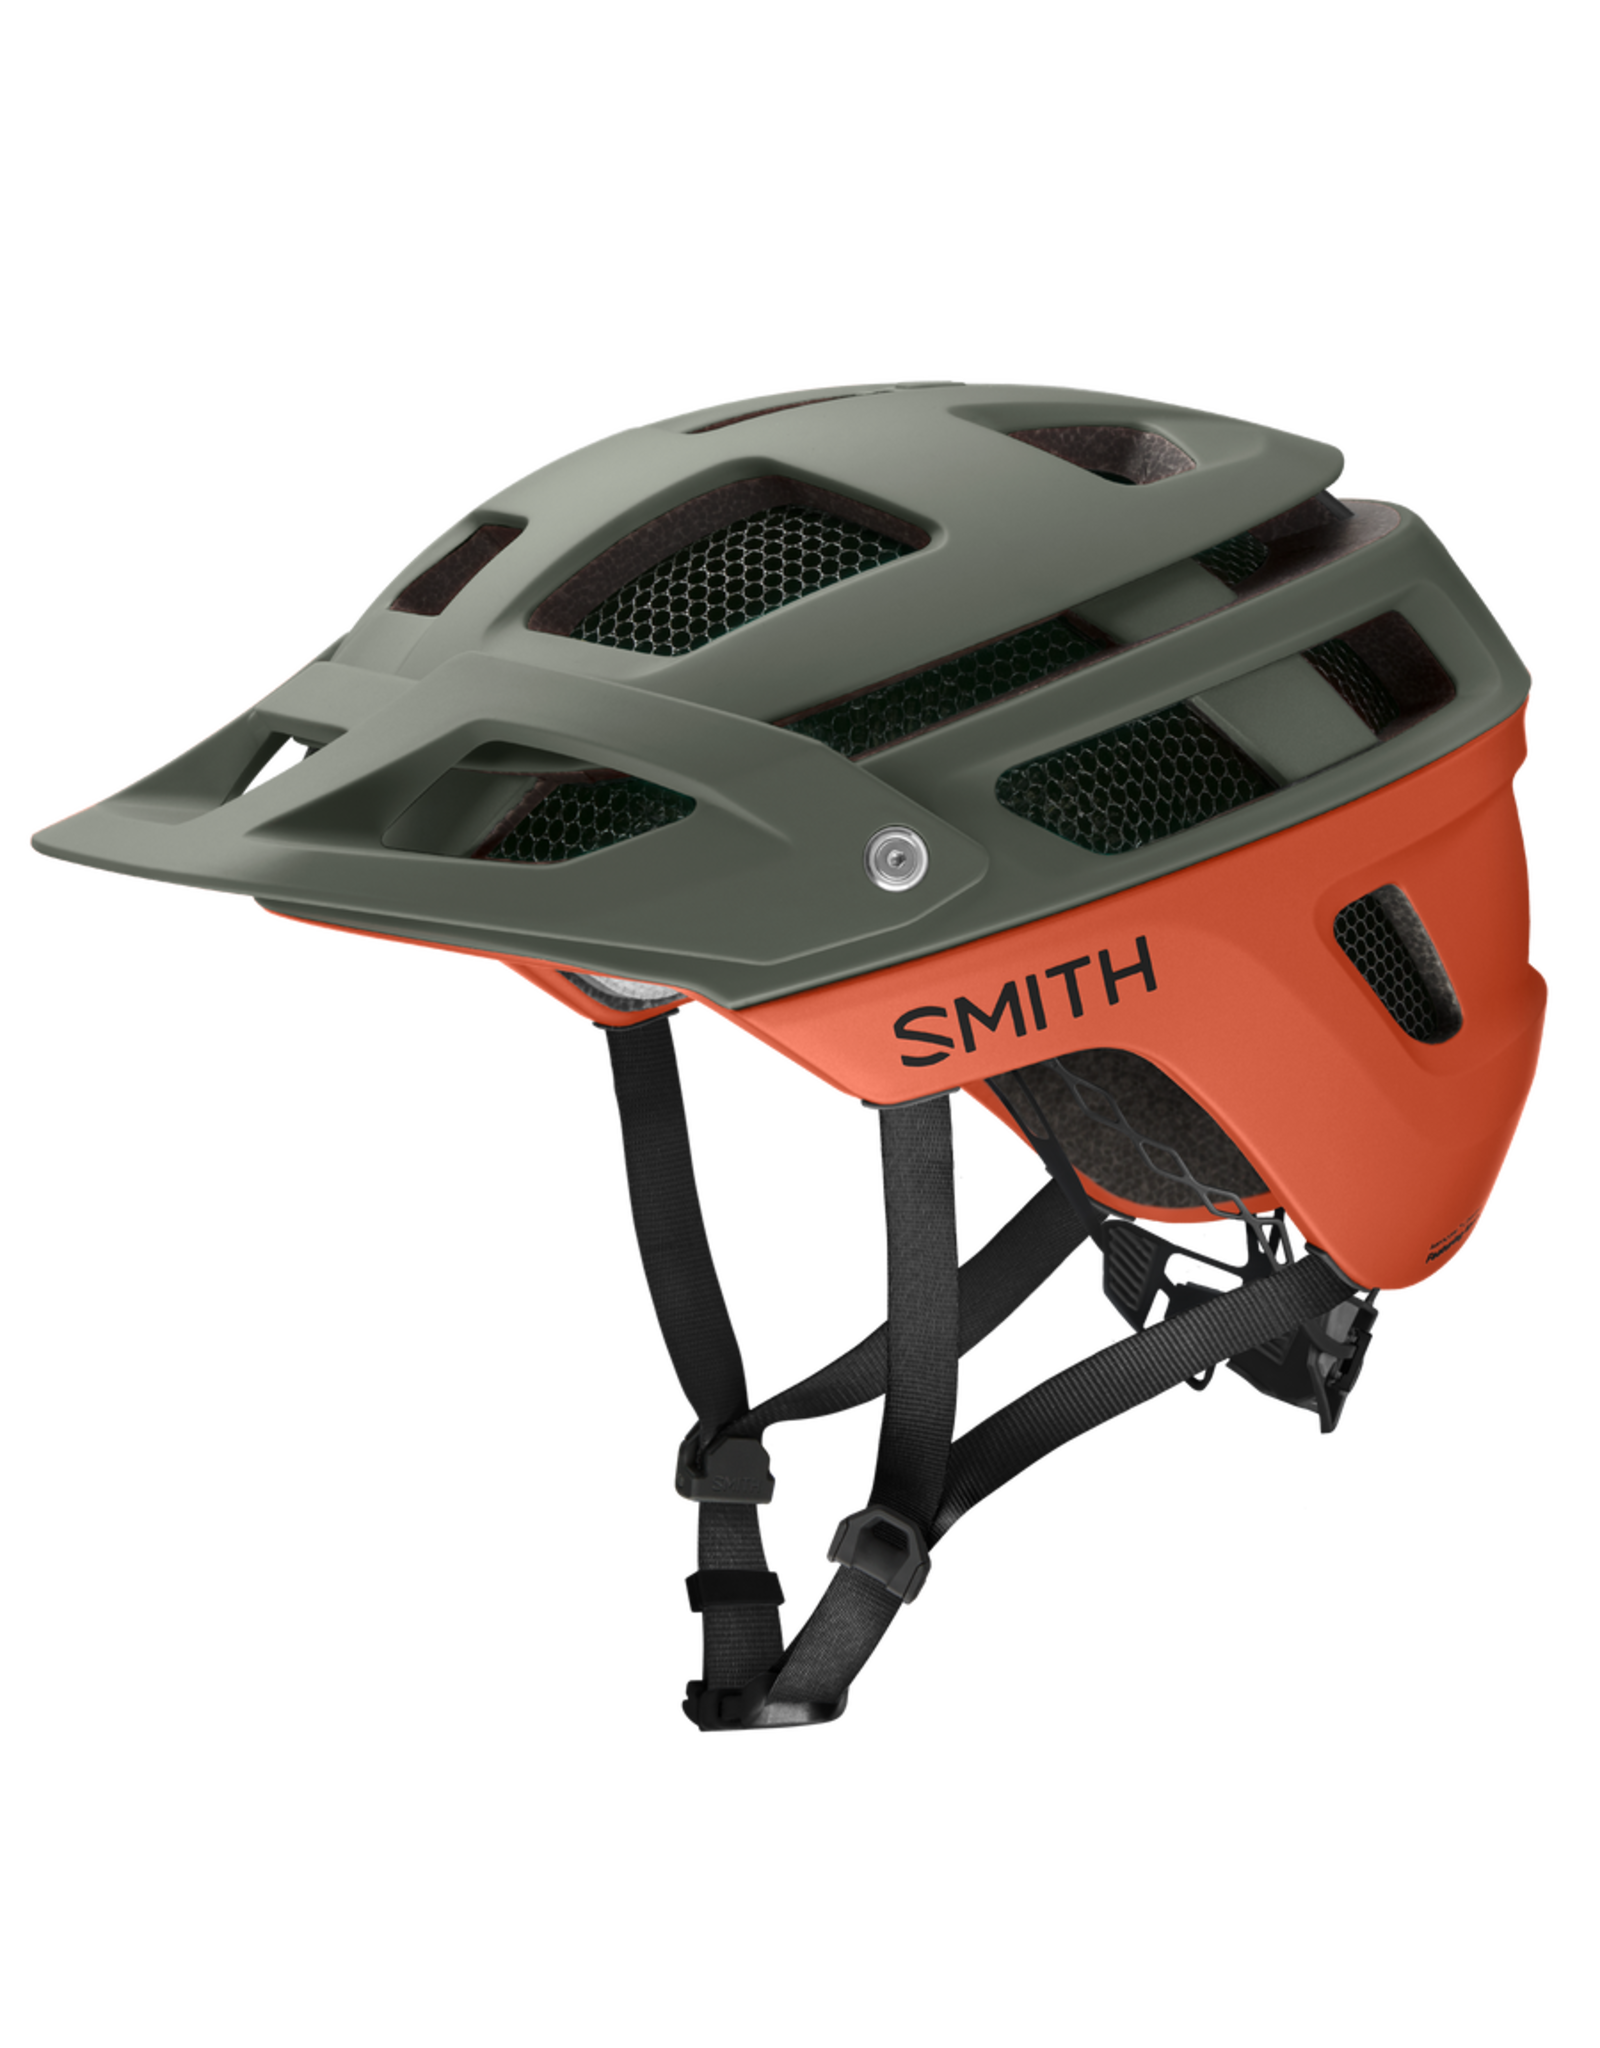 Smith 21' SMITH, Forefront 2, Helmet